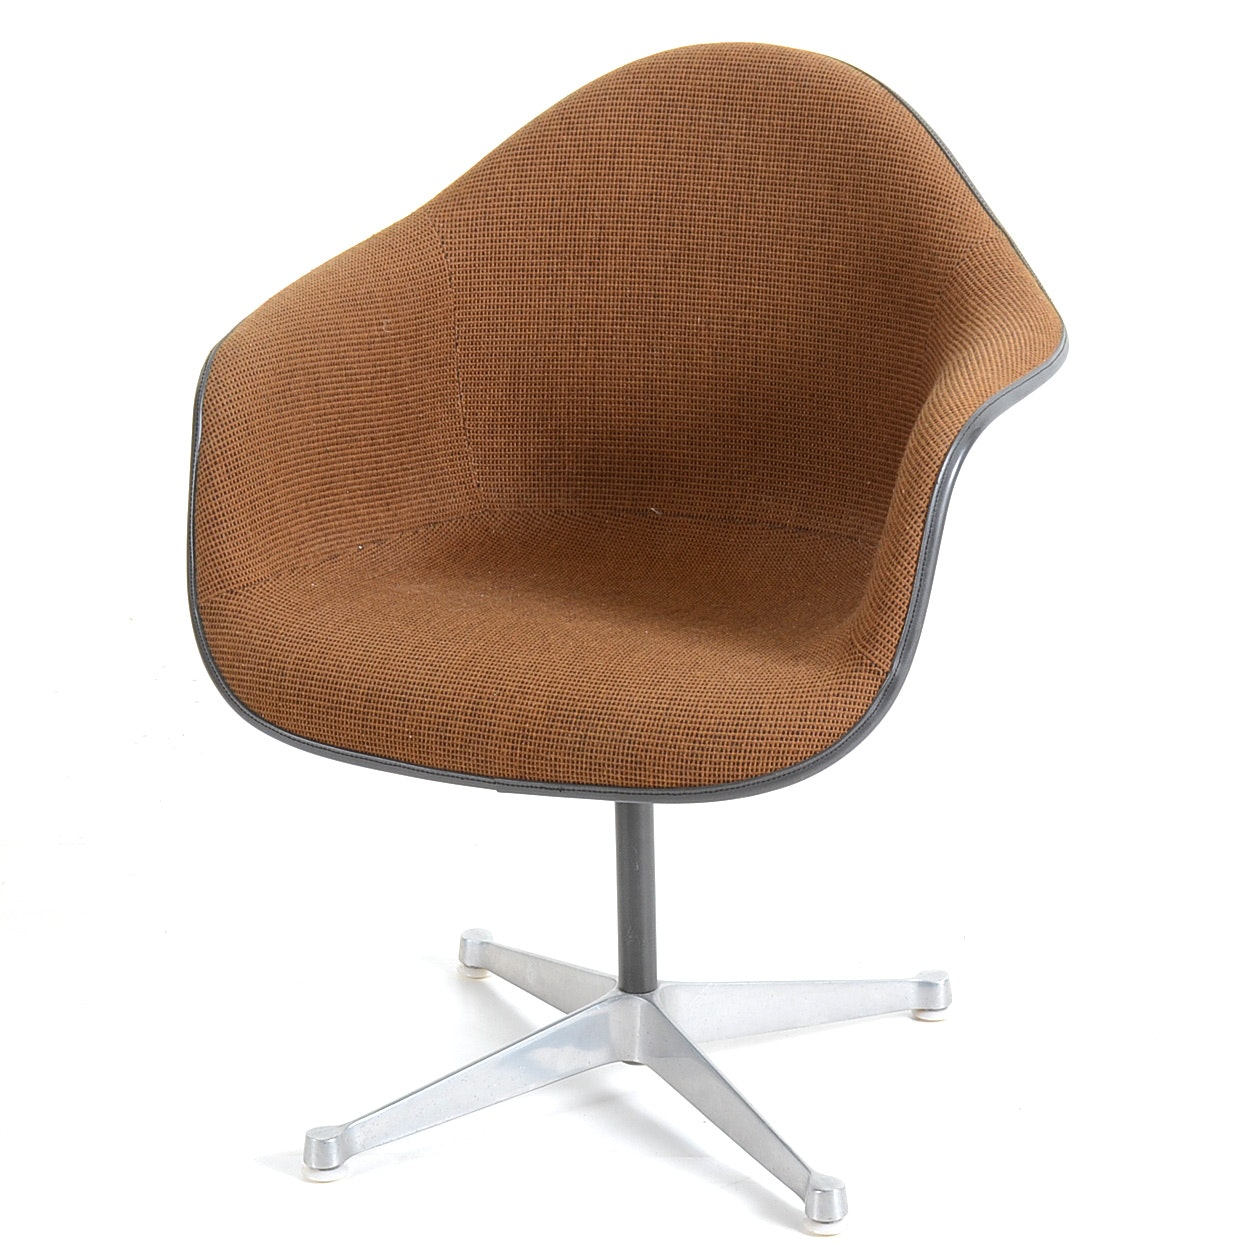 Herman Miller Eames Fiberglass Shell Chair On Swivel